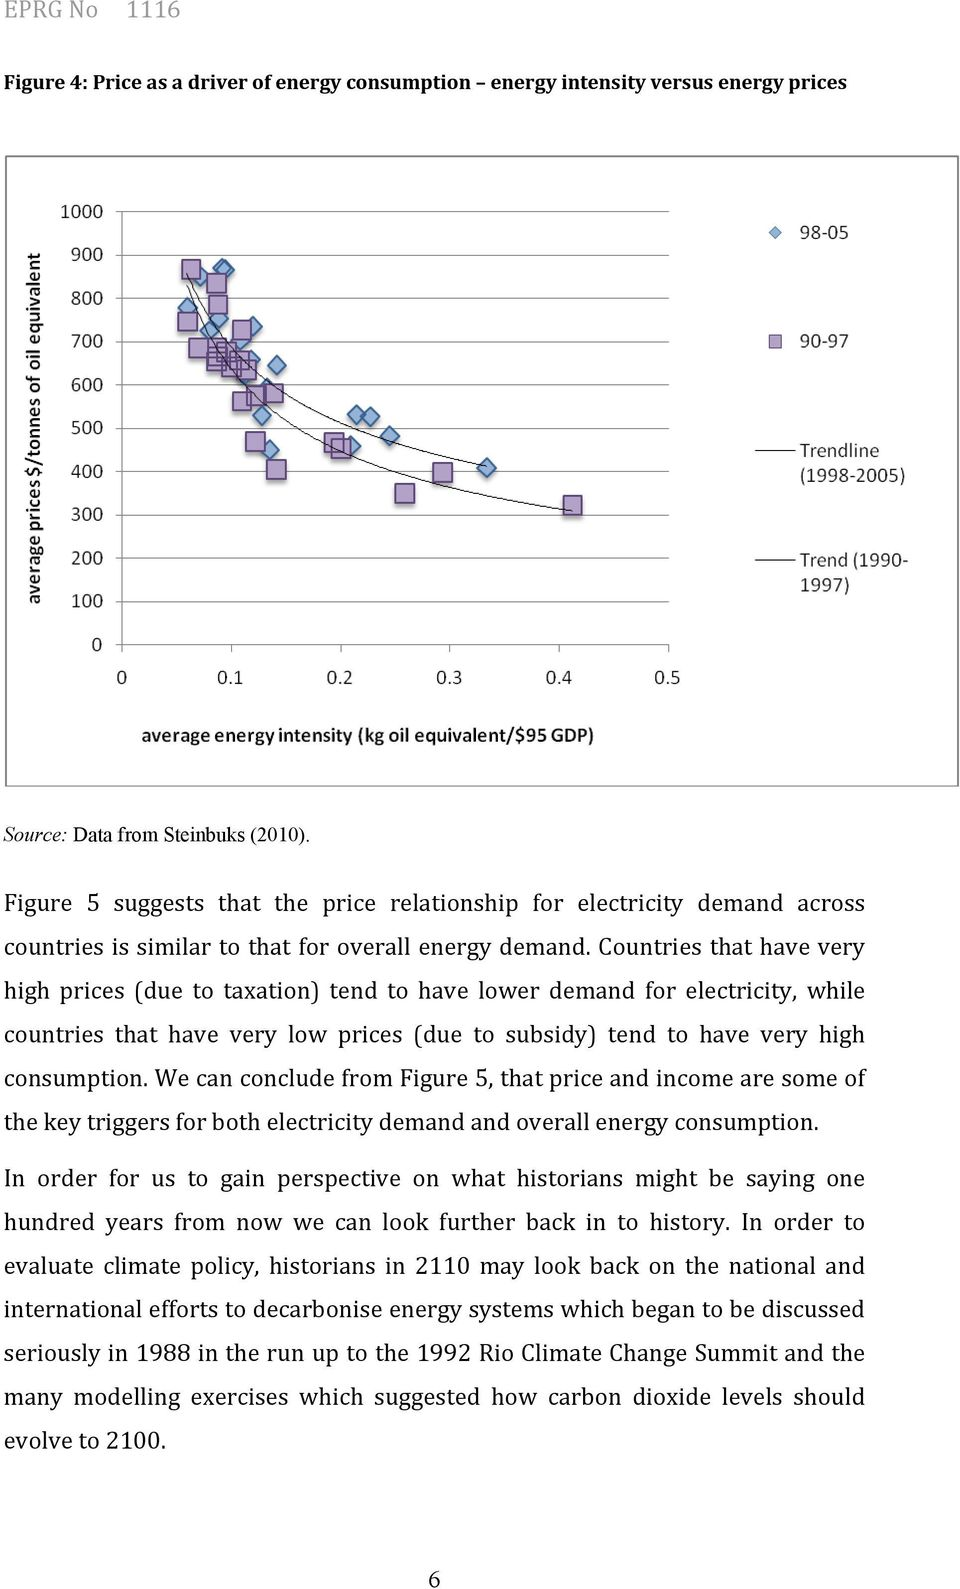 Countries that have very high prices (due to taxation) tend to have lower demand for electricity, while countries that have very low prices (due to subsidy) tend to have very high consumption.